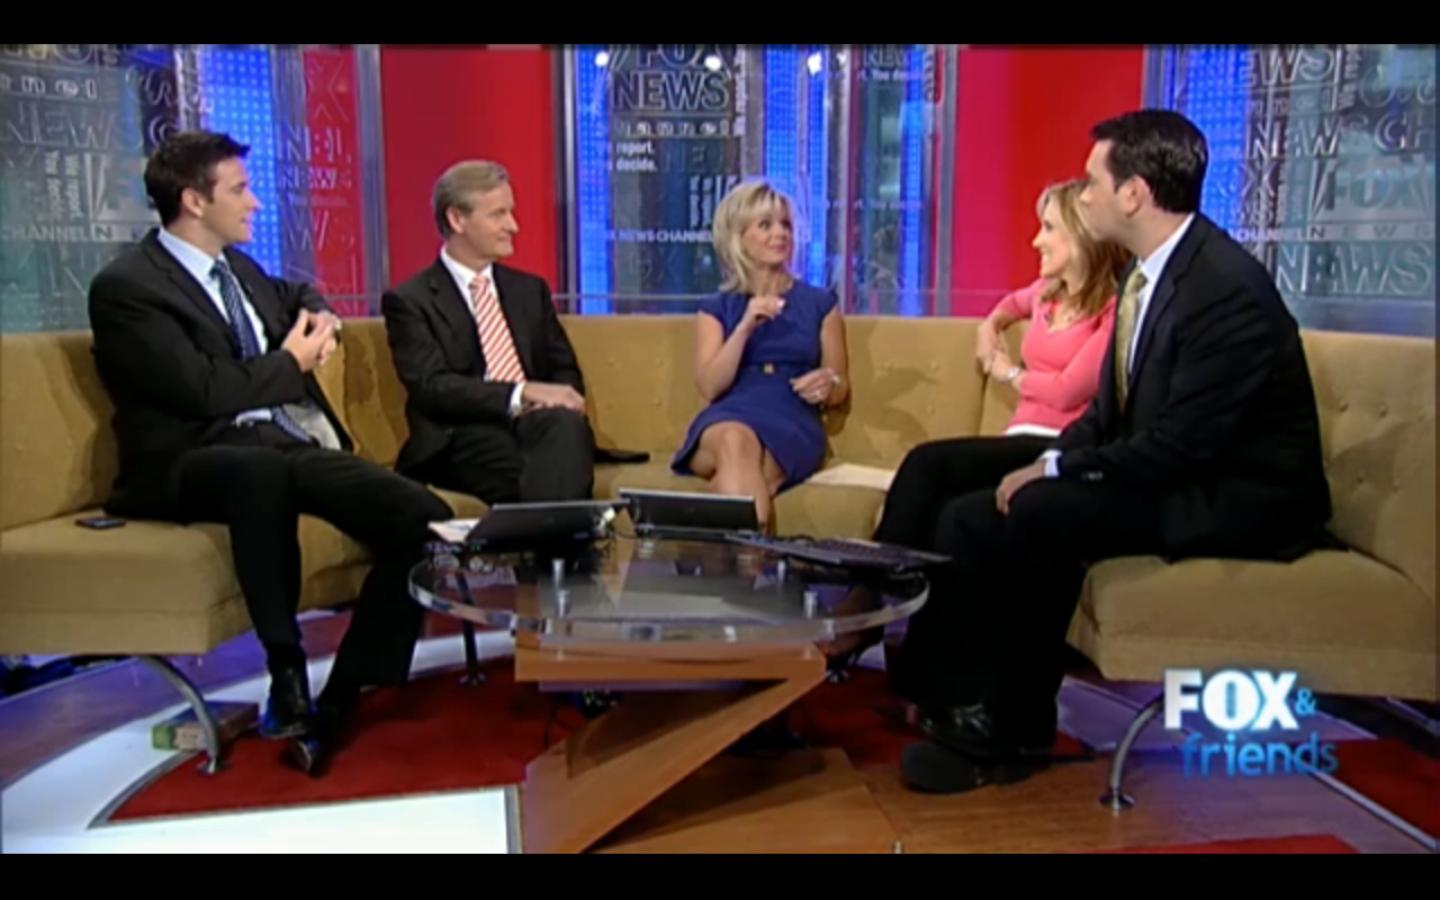 Fox and friends after the show show